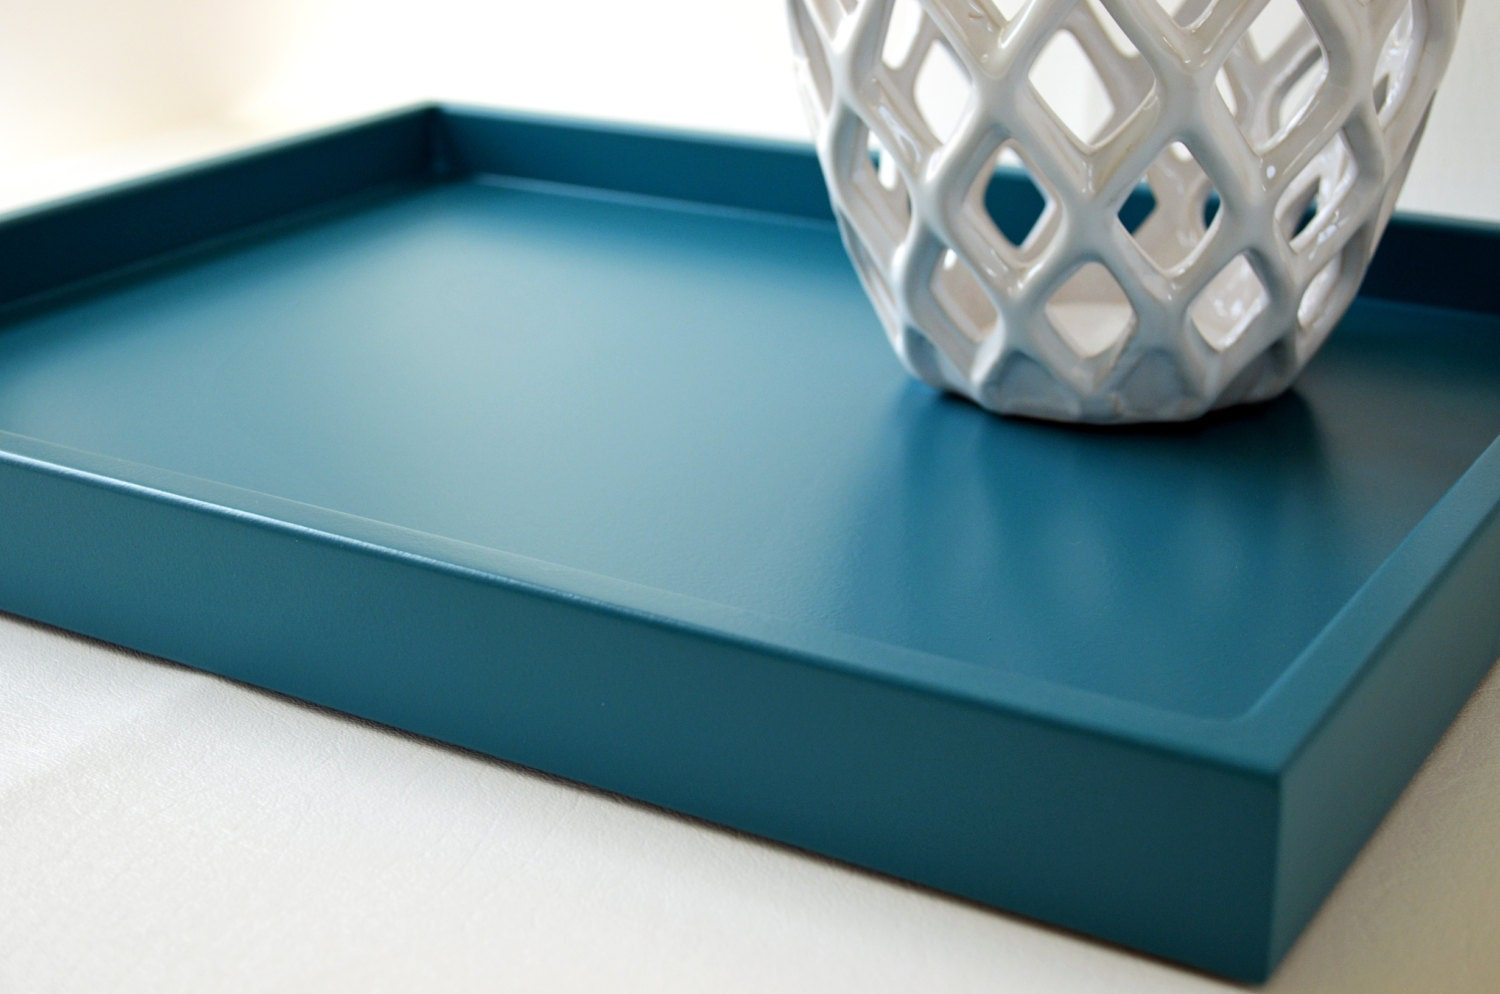 Teal Blue 14 X 18 Shallow Wood Decorative Tray Coffee Table